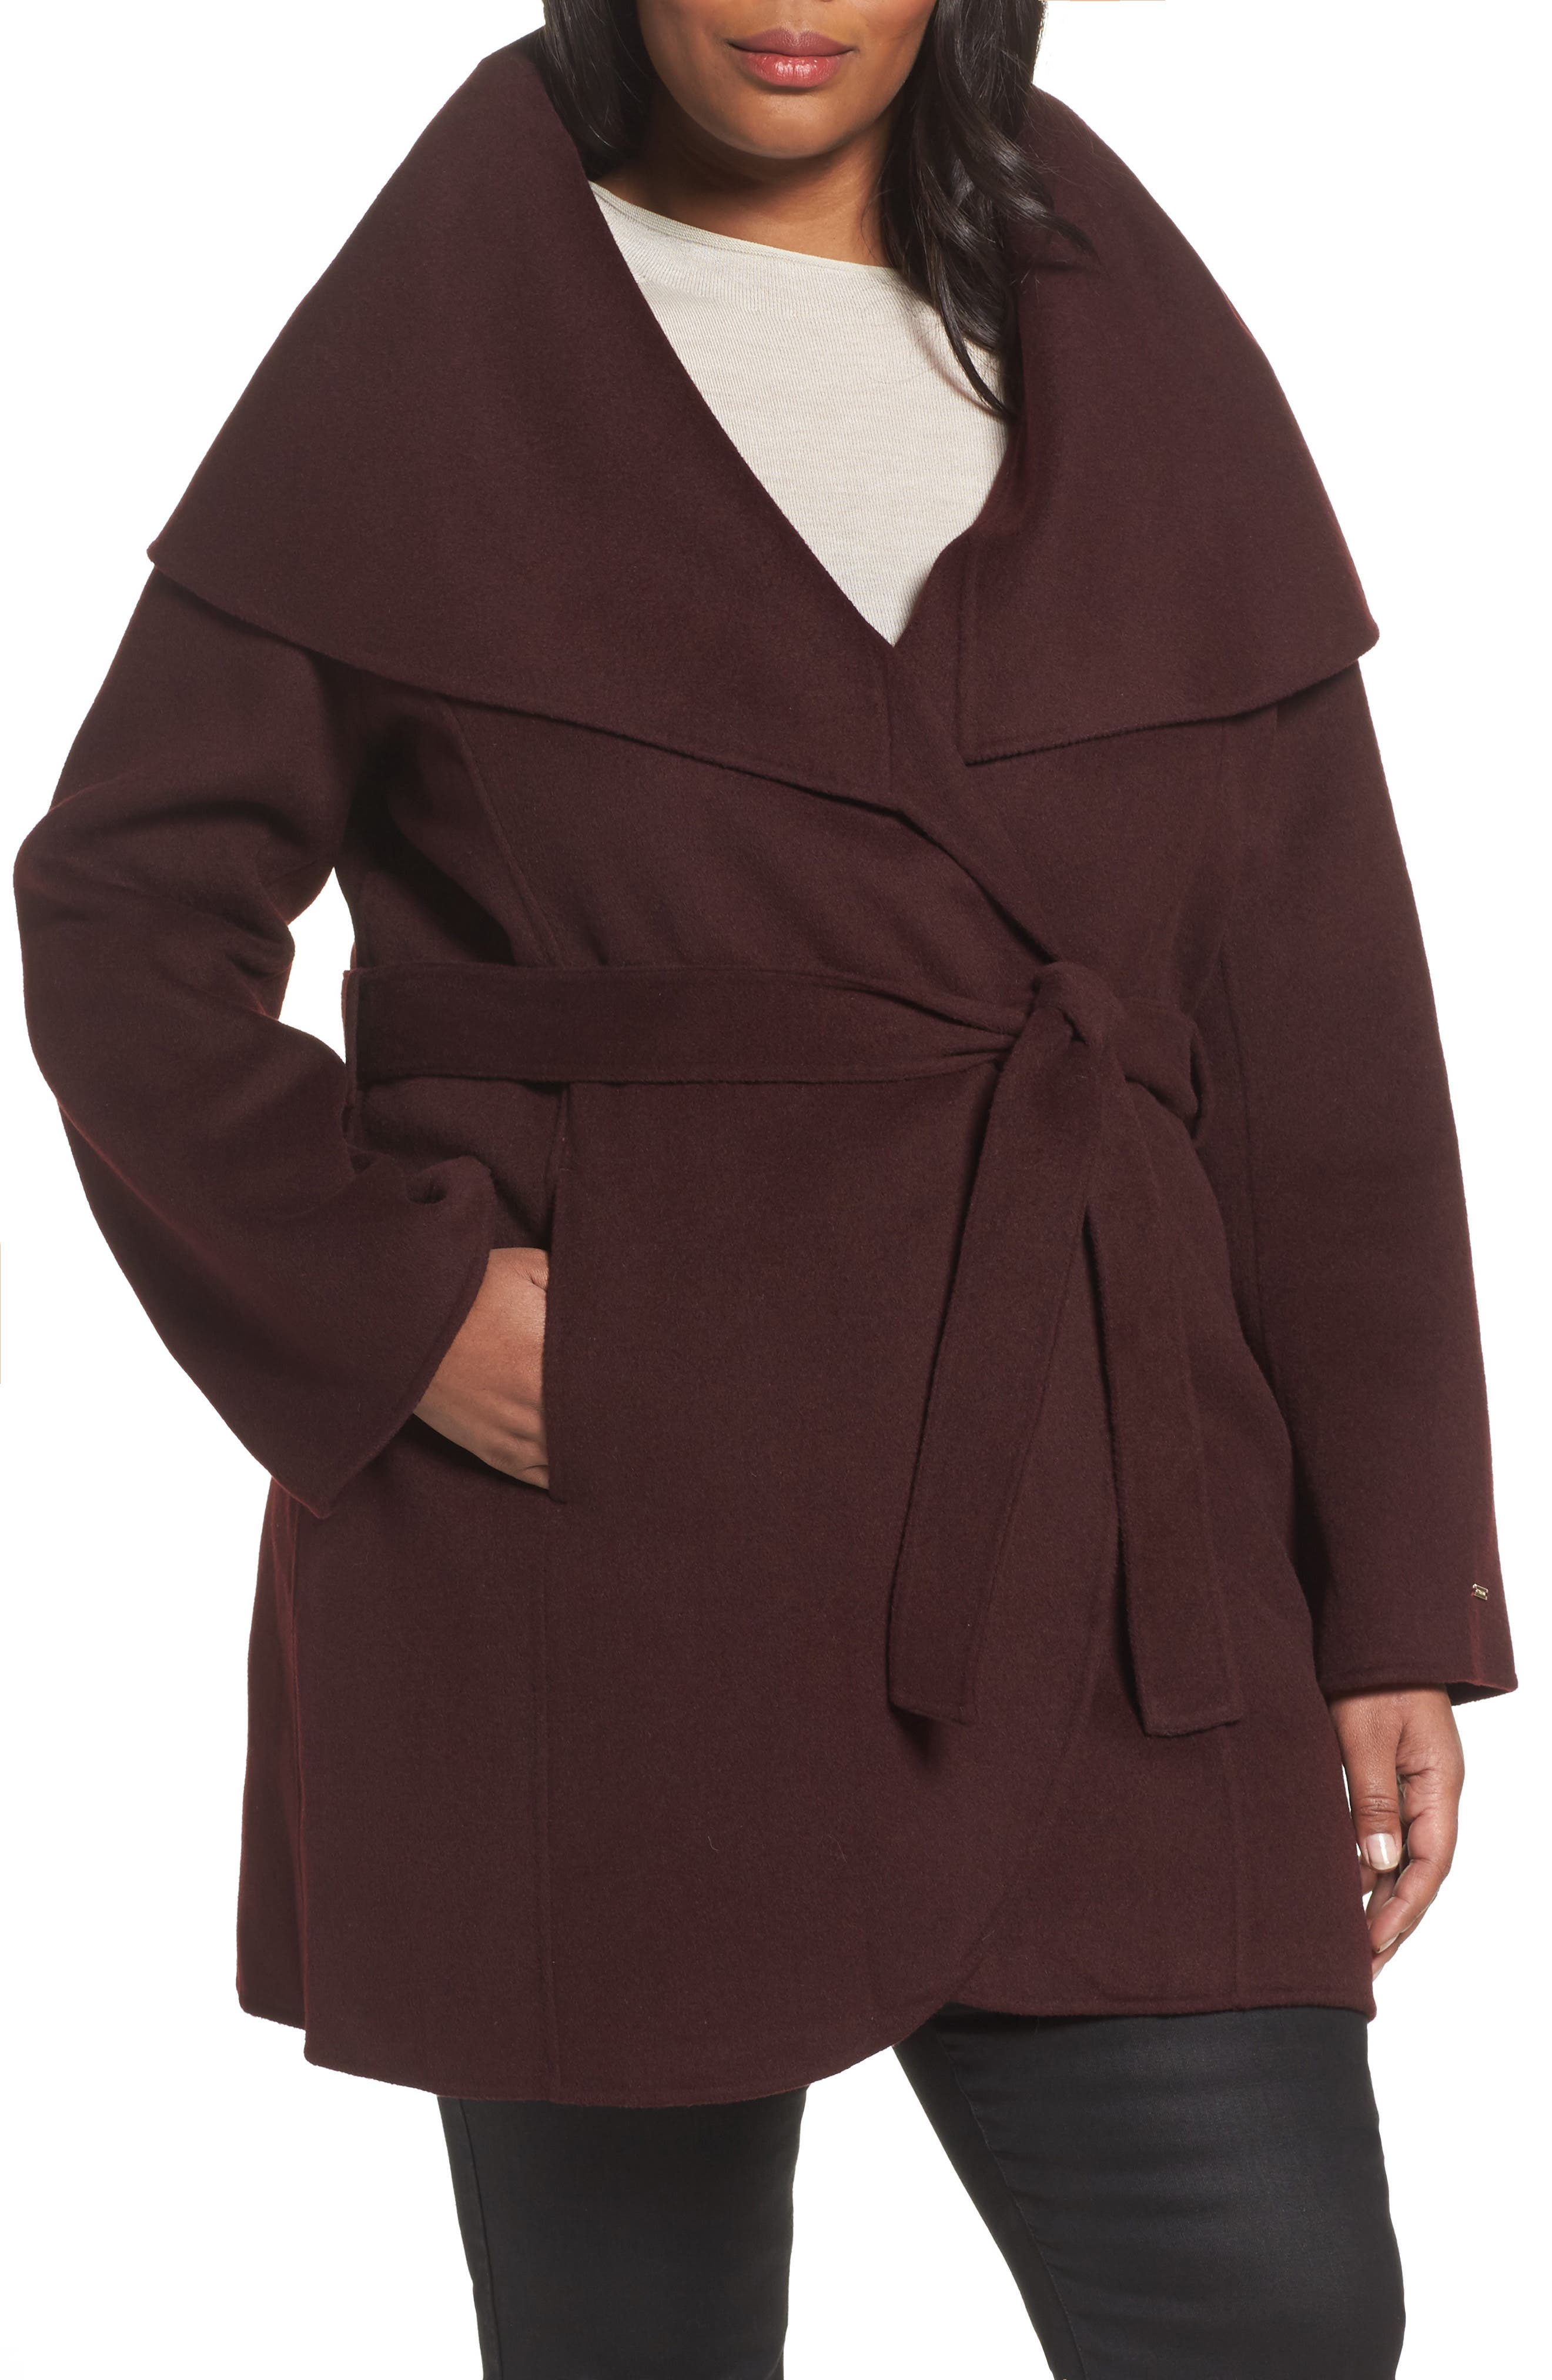 Maria Double Face Wool Blend Wrap Coat,                         Main,                         color, 938